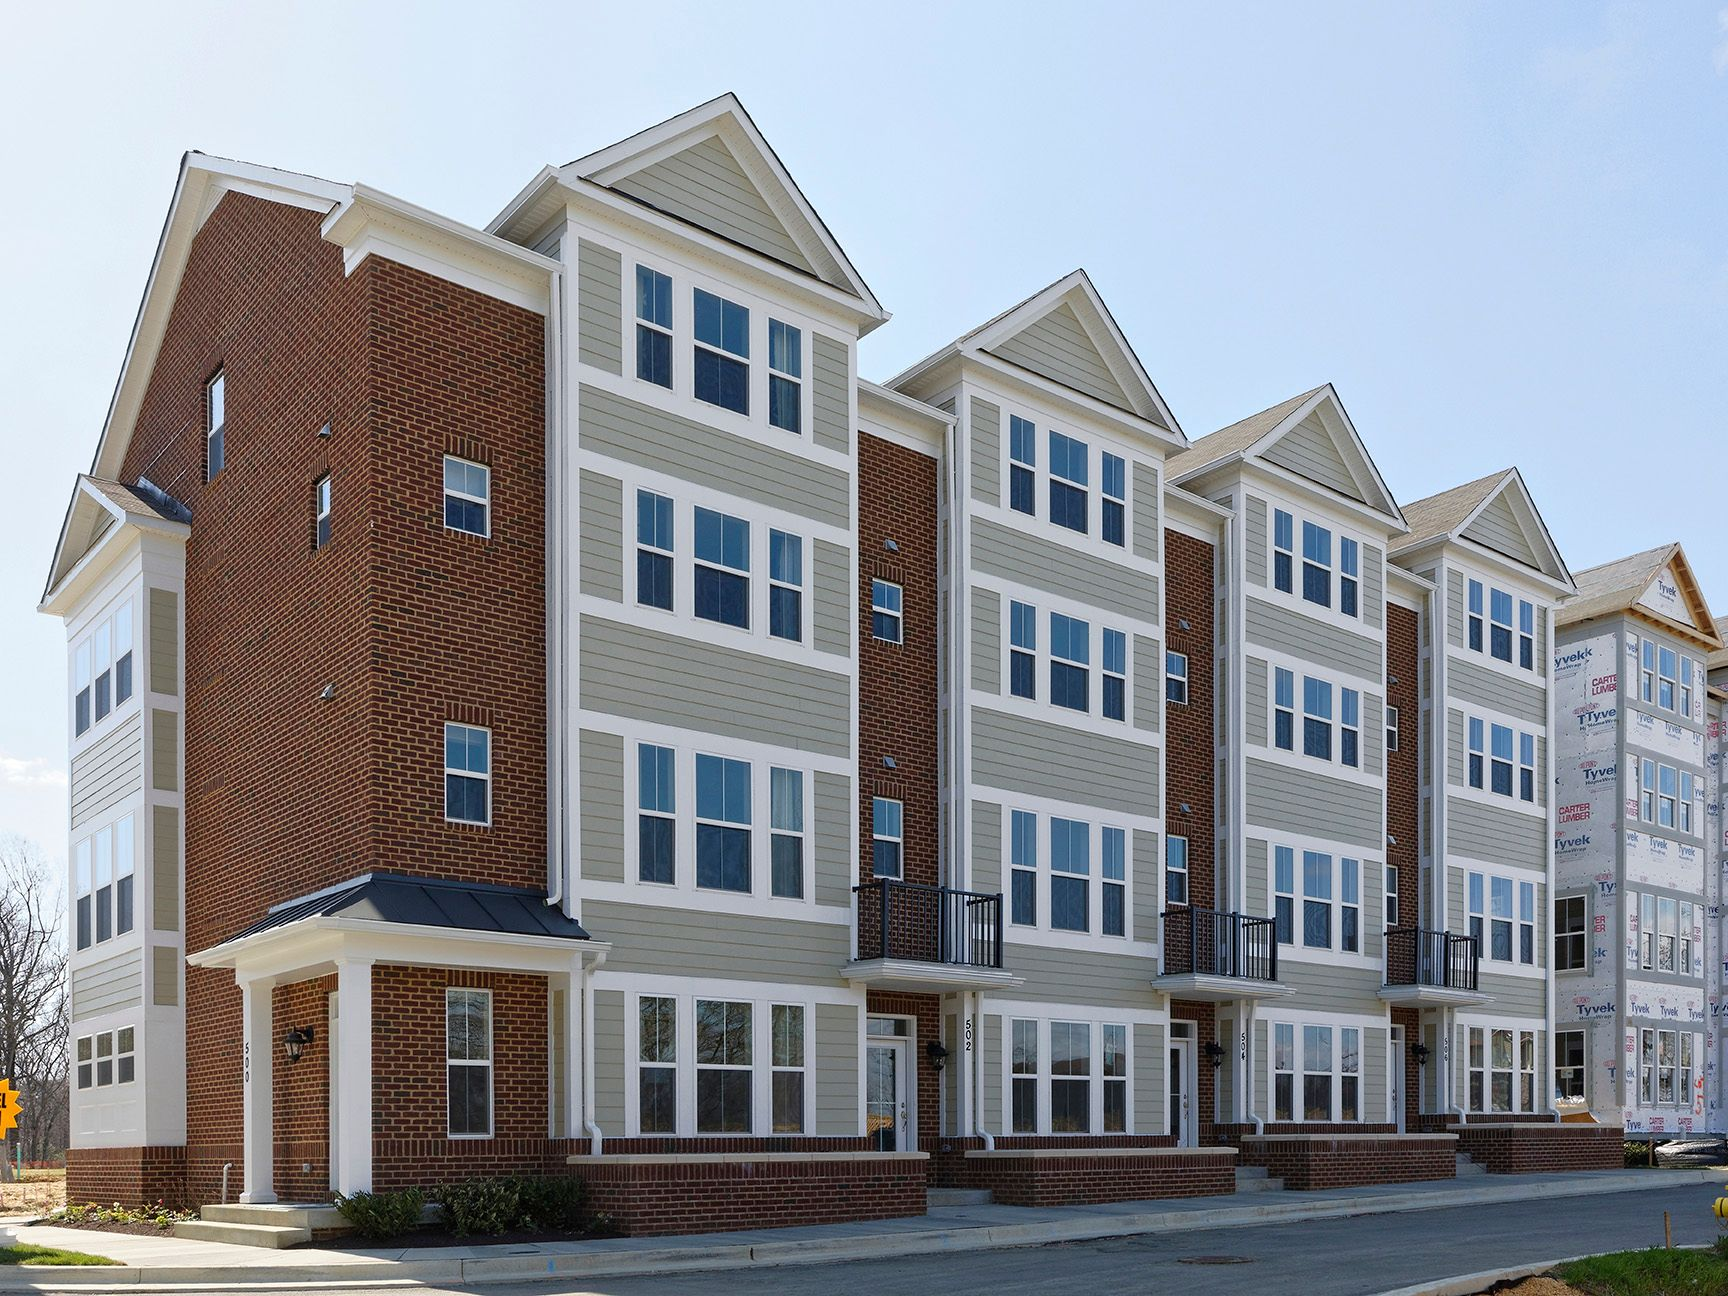 'Annapolis Townes at Neal Farm' by Williamsburg Homes LLC in Baltimore